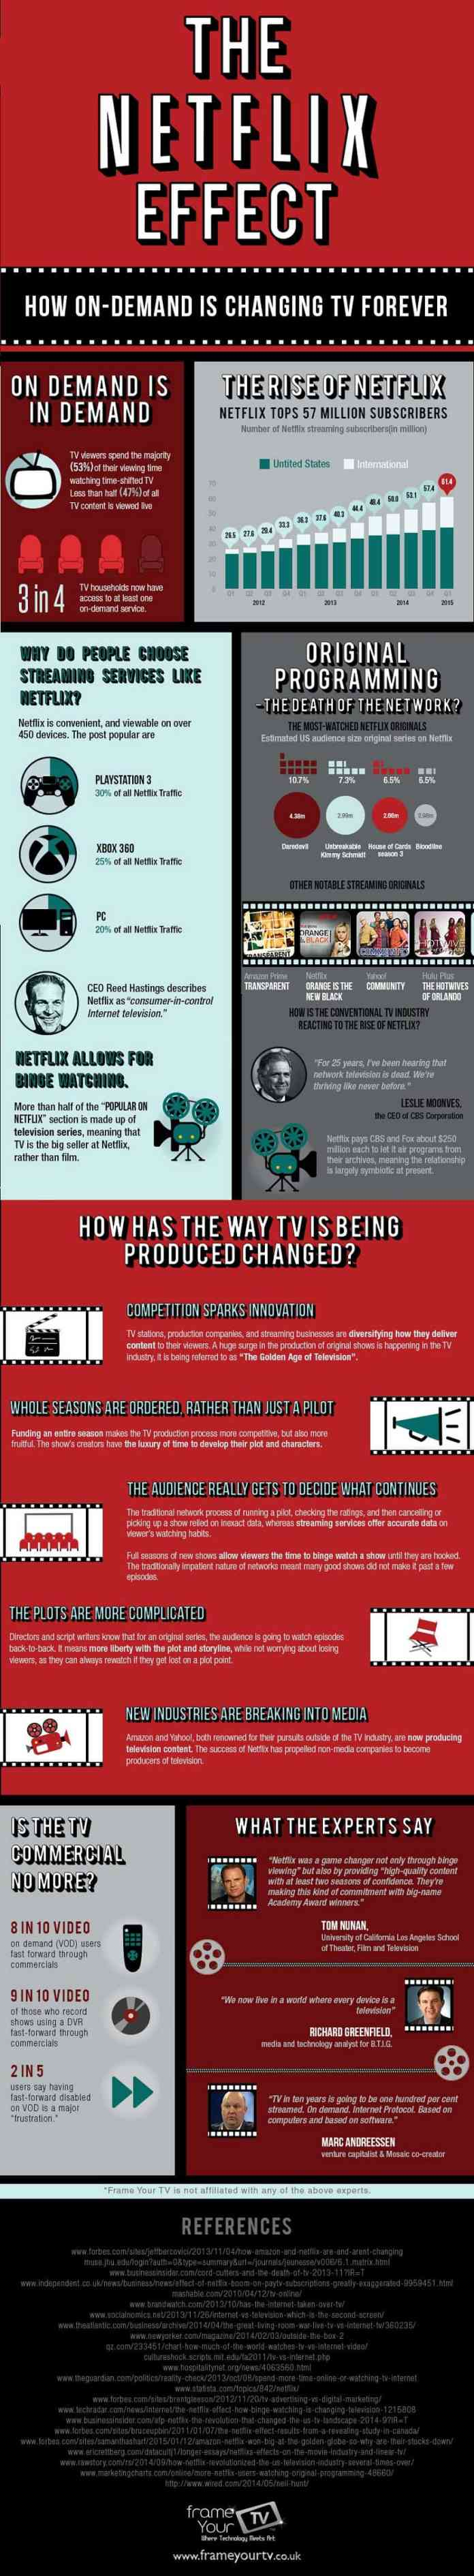 netflix affect cable infographic